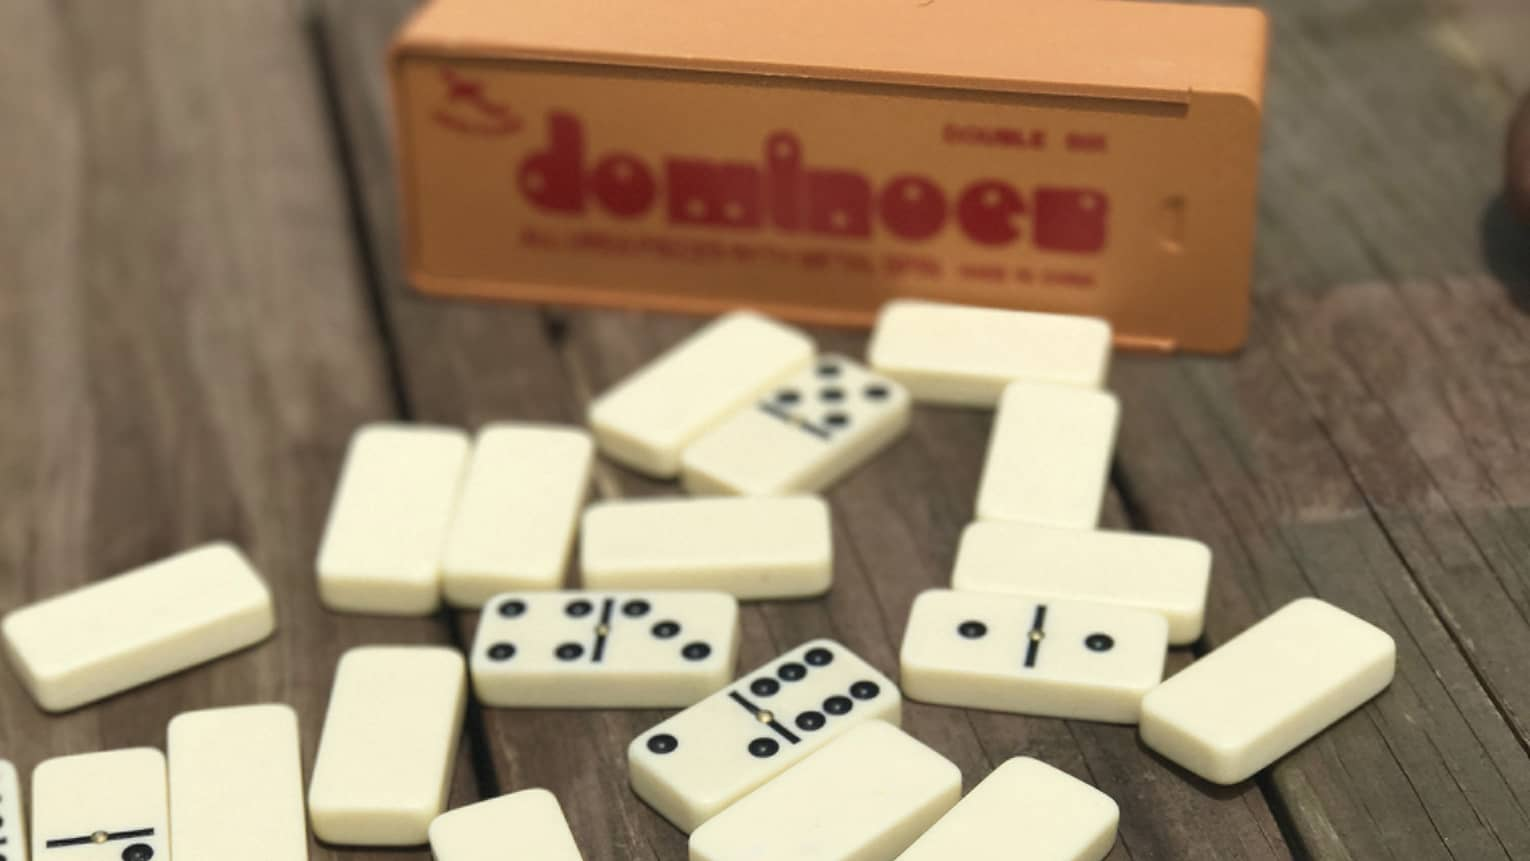 Dominoes on table, box in background